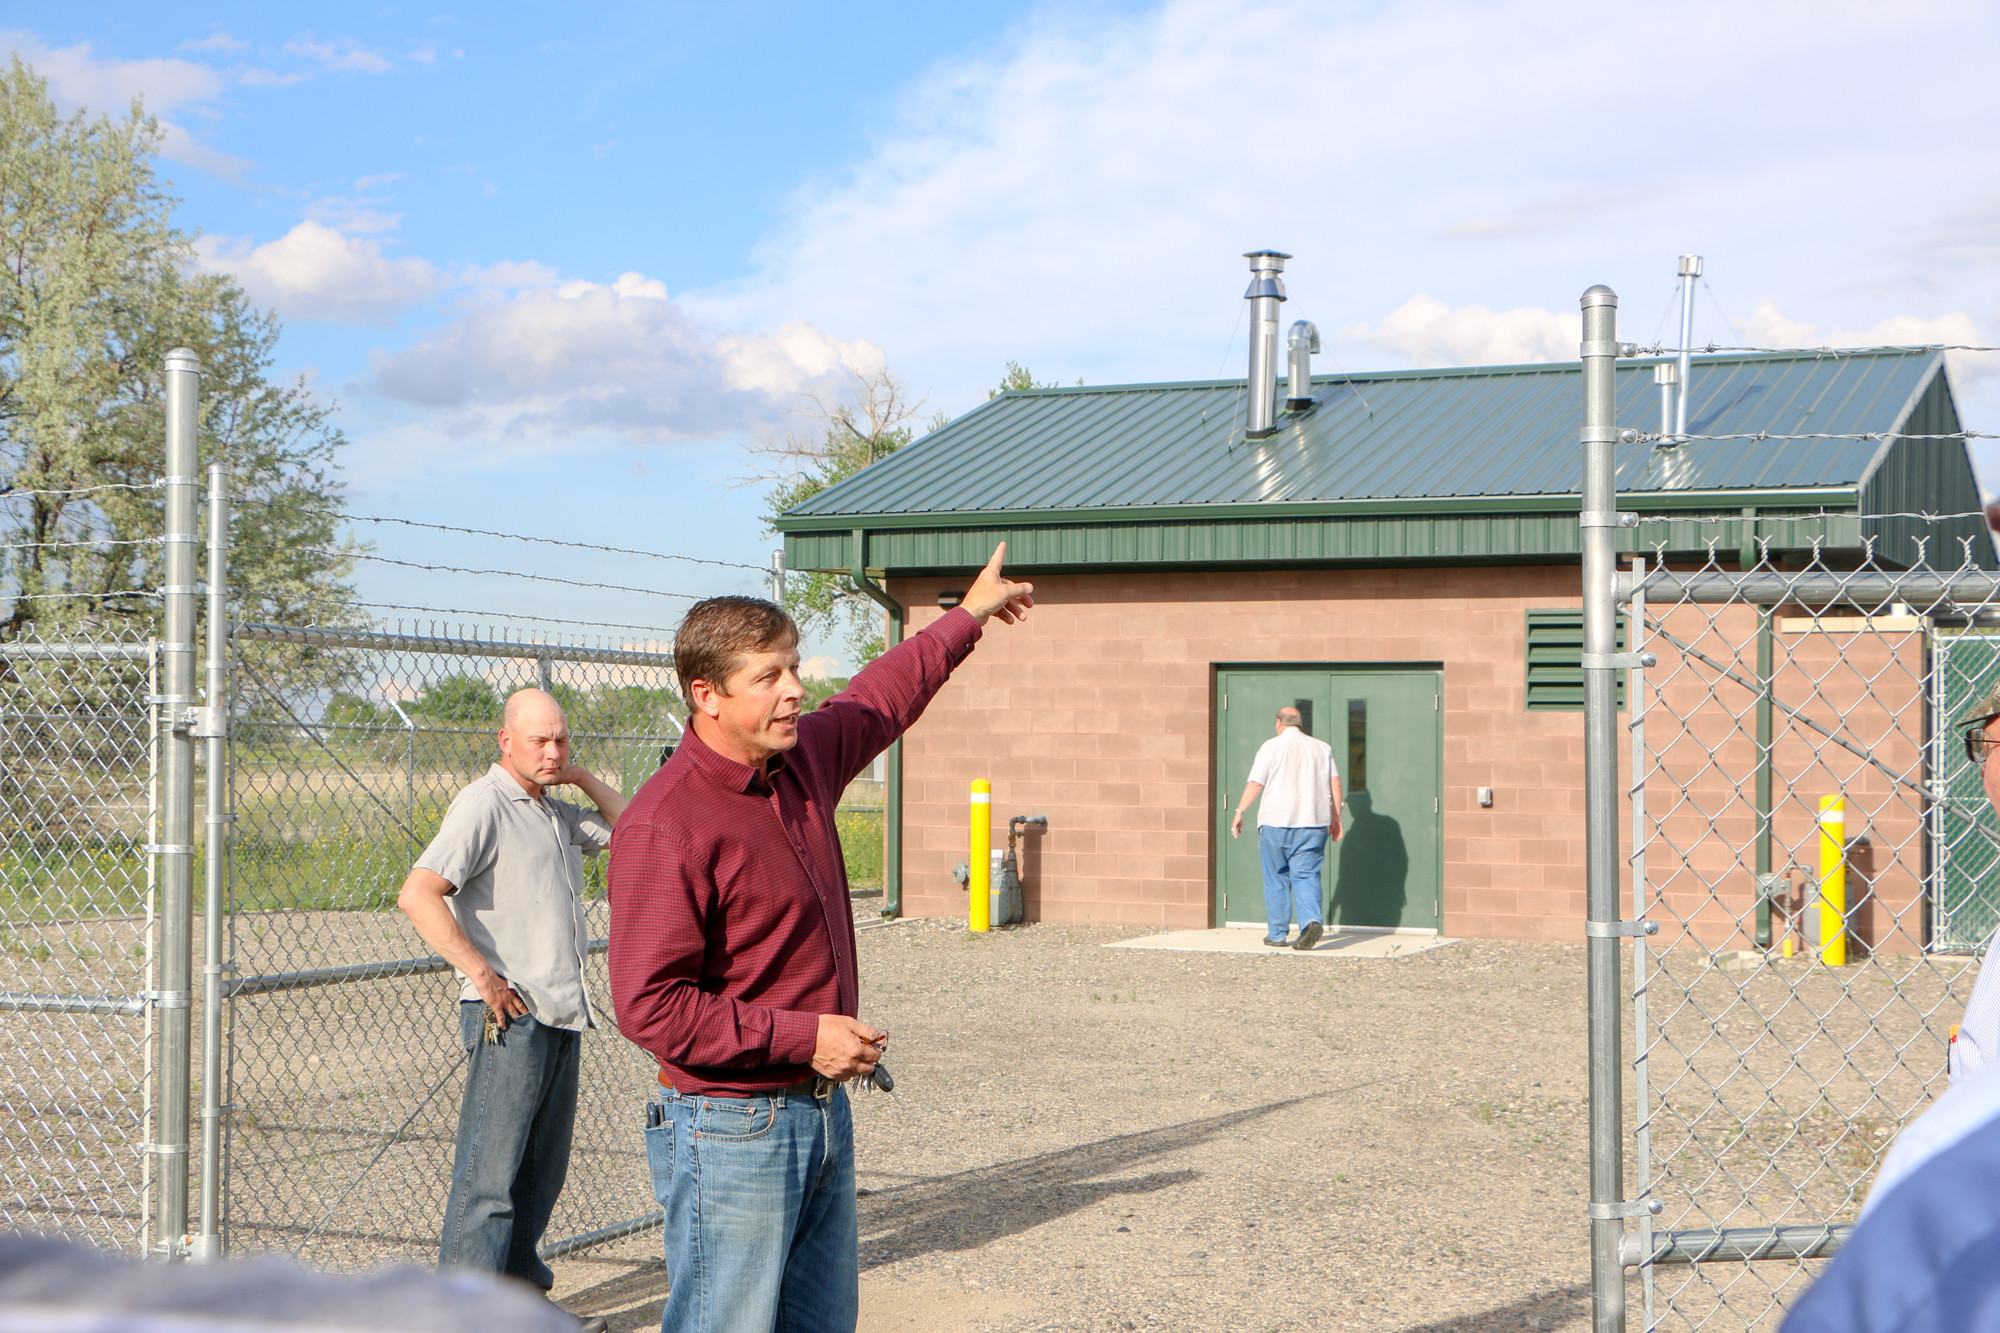 Kurt Markegard meets withthe city council and shows them the building that contains the controls and systems that maintain the intake and pipeline.